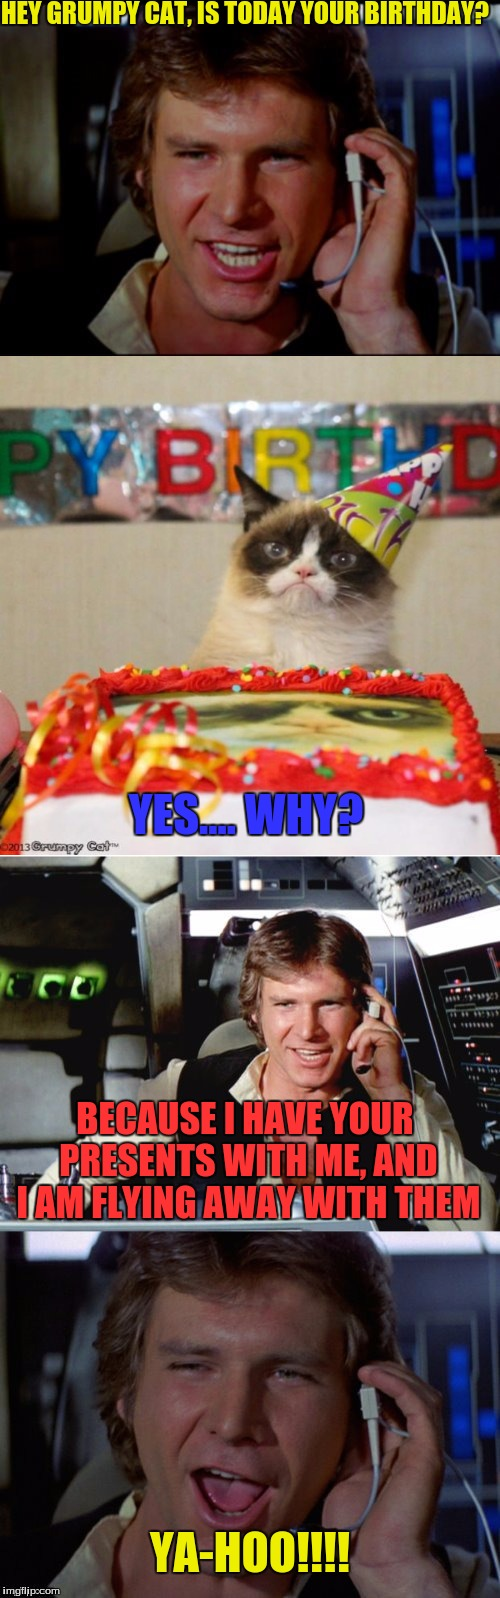 Here is an idea I got from a template Dashhopes made :) | HEY GRUMPY CAT, IS TODAY YOUR BIRTHDAY? BECAUSE I HAVE YOUR PRESENTS WITH ME, AND I AM FLYING AWAY WITH THEM YES.... WHY? YA-HOO!!!! | image tagged in bad pun han solo,dashhopes,grumpycat,star wars,han solo | made w/ Imgflip meme maker